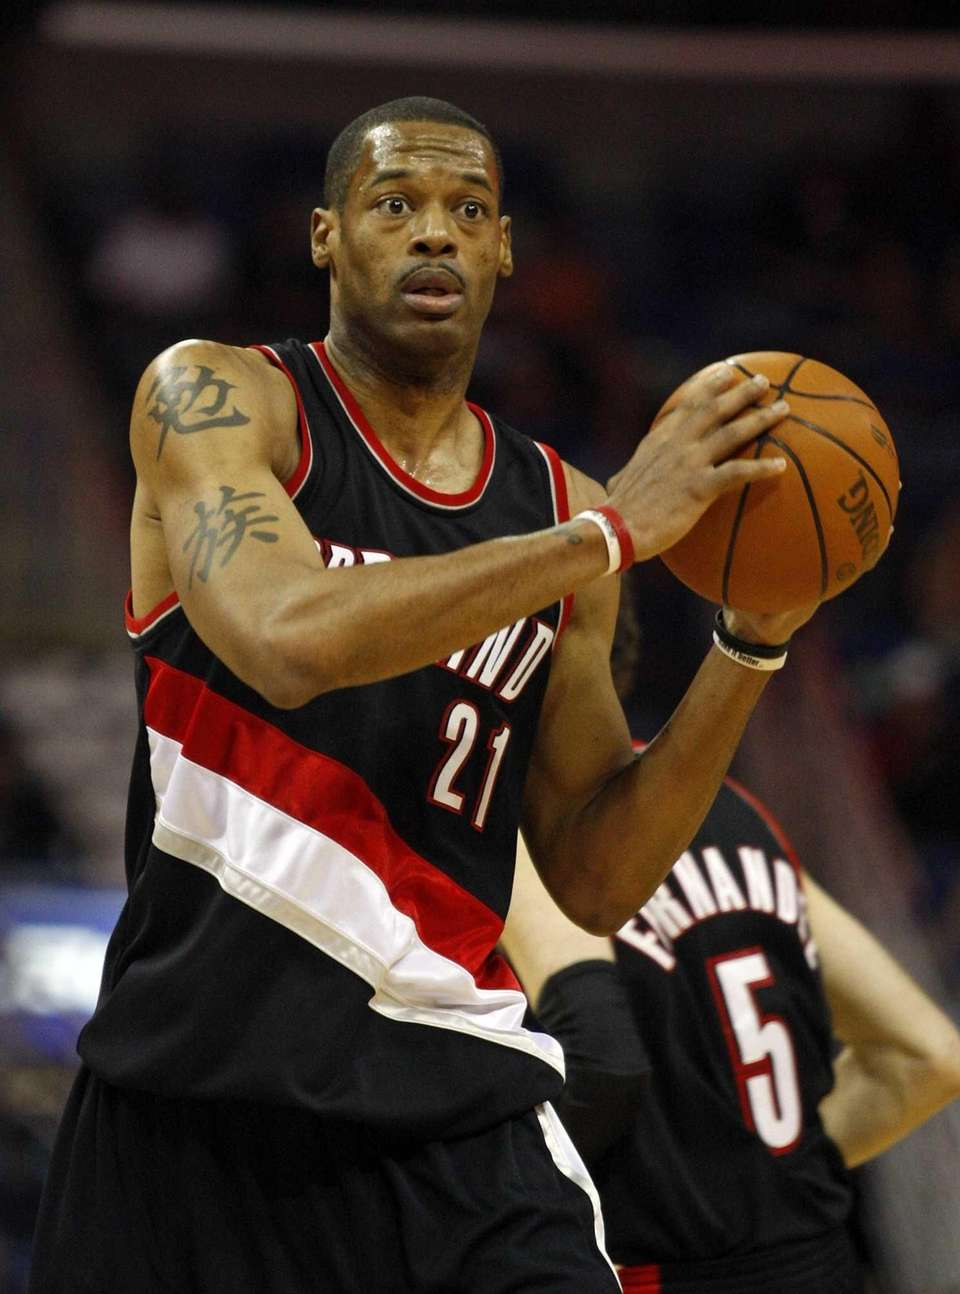 Portland Trail Blazers forward Marcus Camby looks to